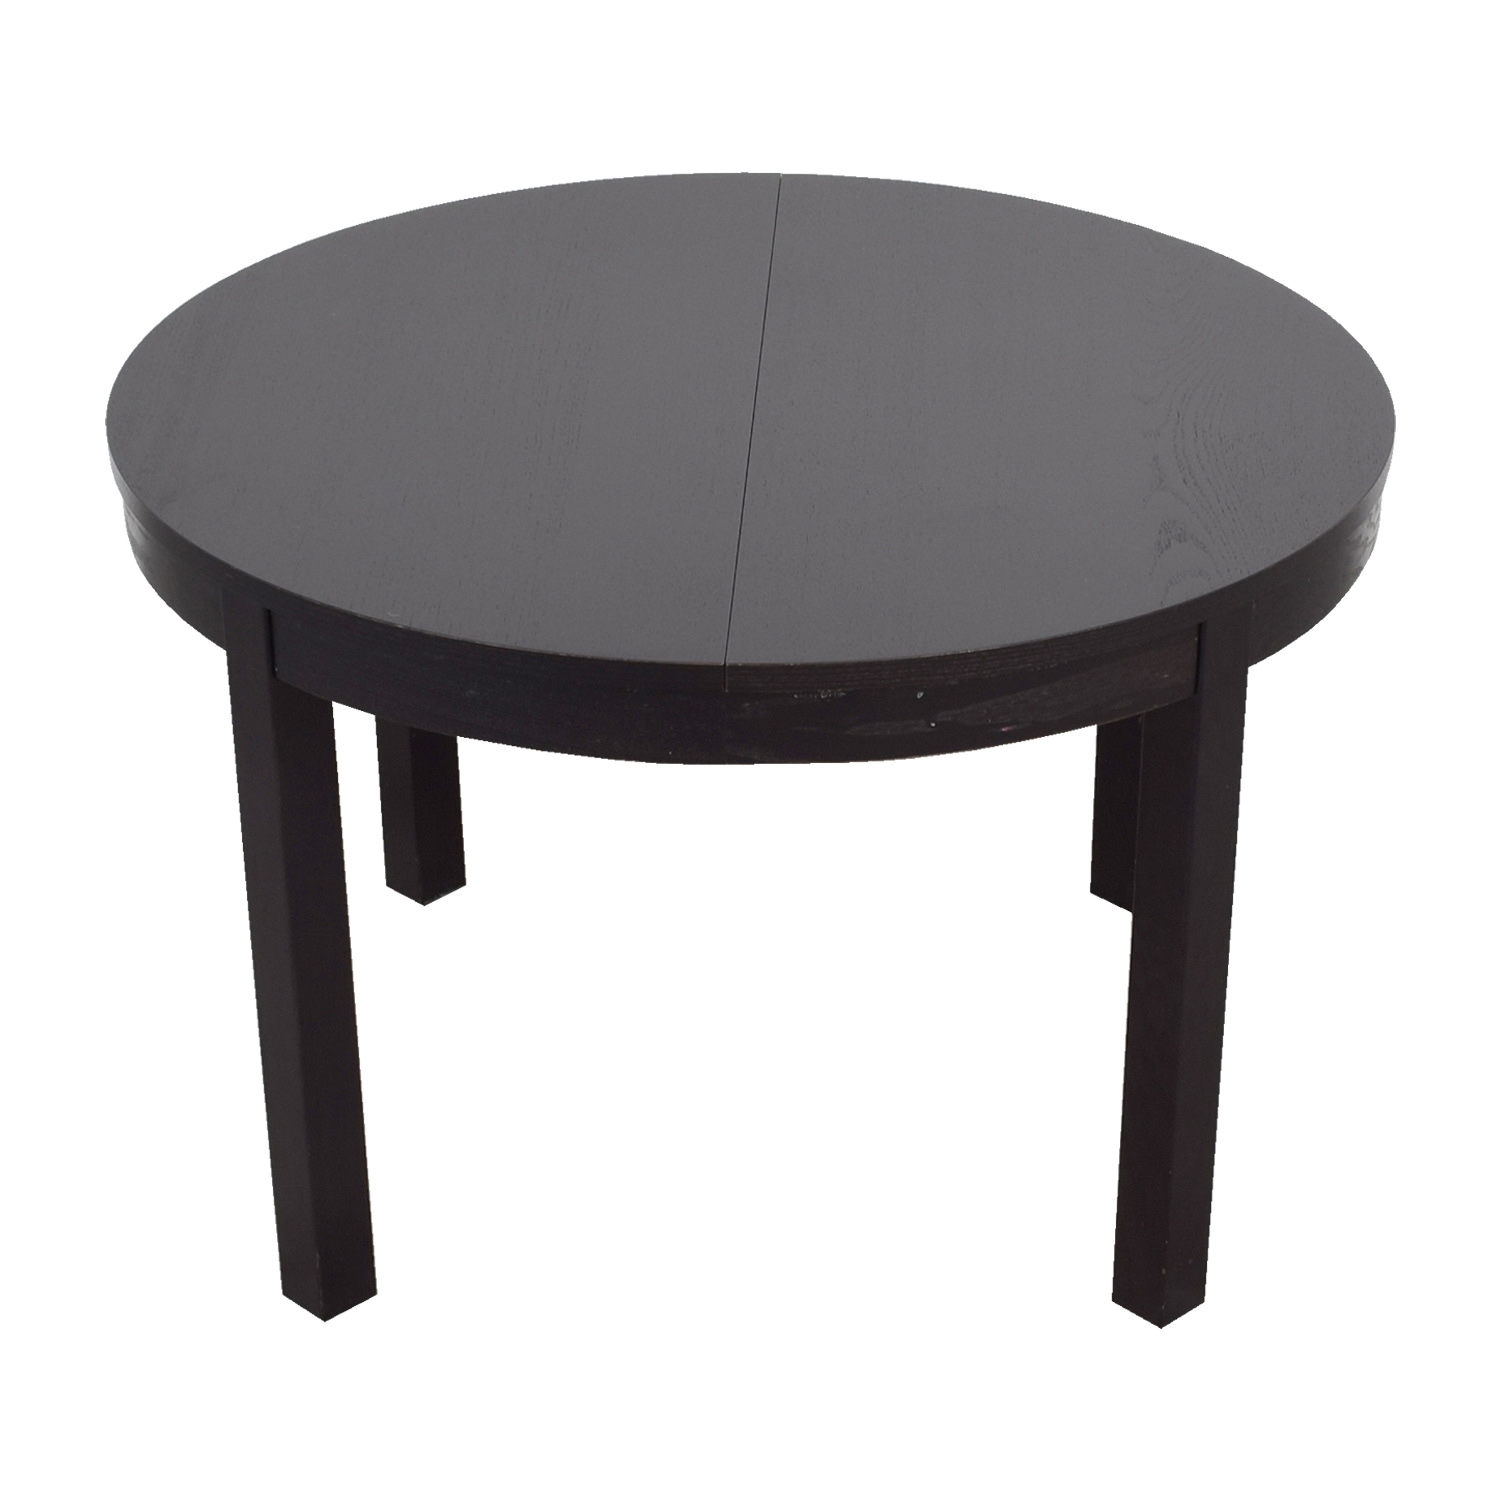 89 off ikea ikea bjursta extendable round to oval dining table tables. Black Bedroom Furniture Sets. Home Design Ideas